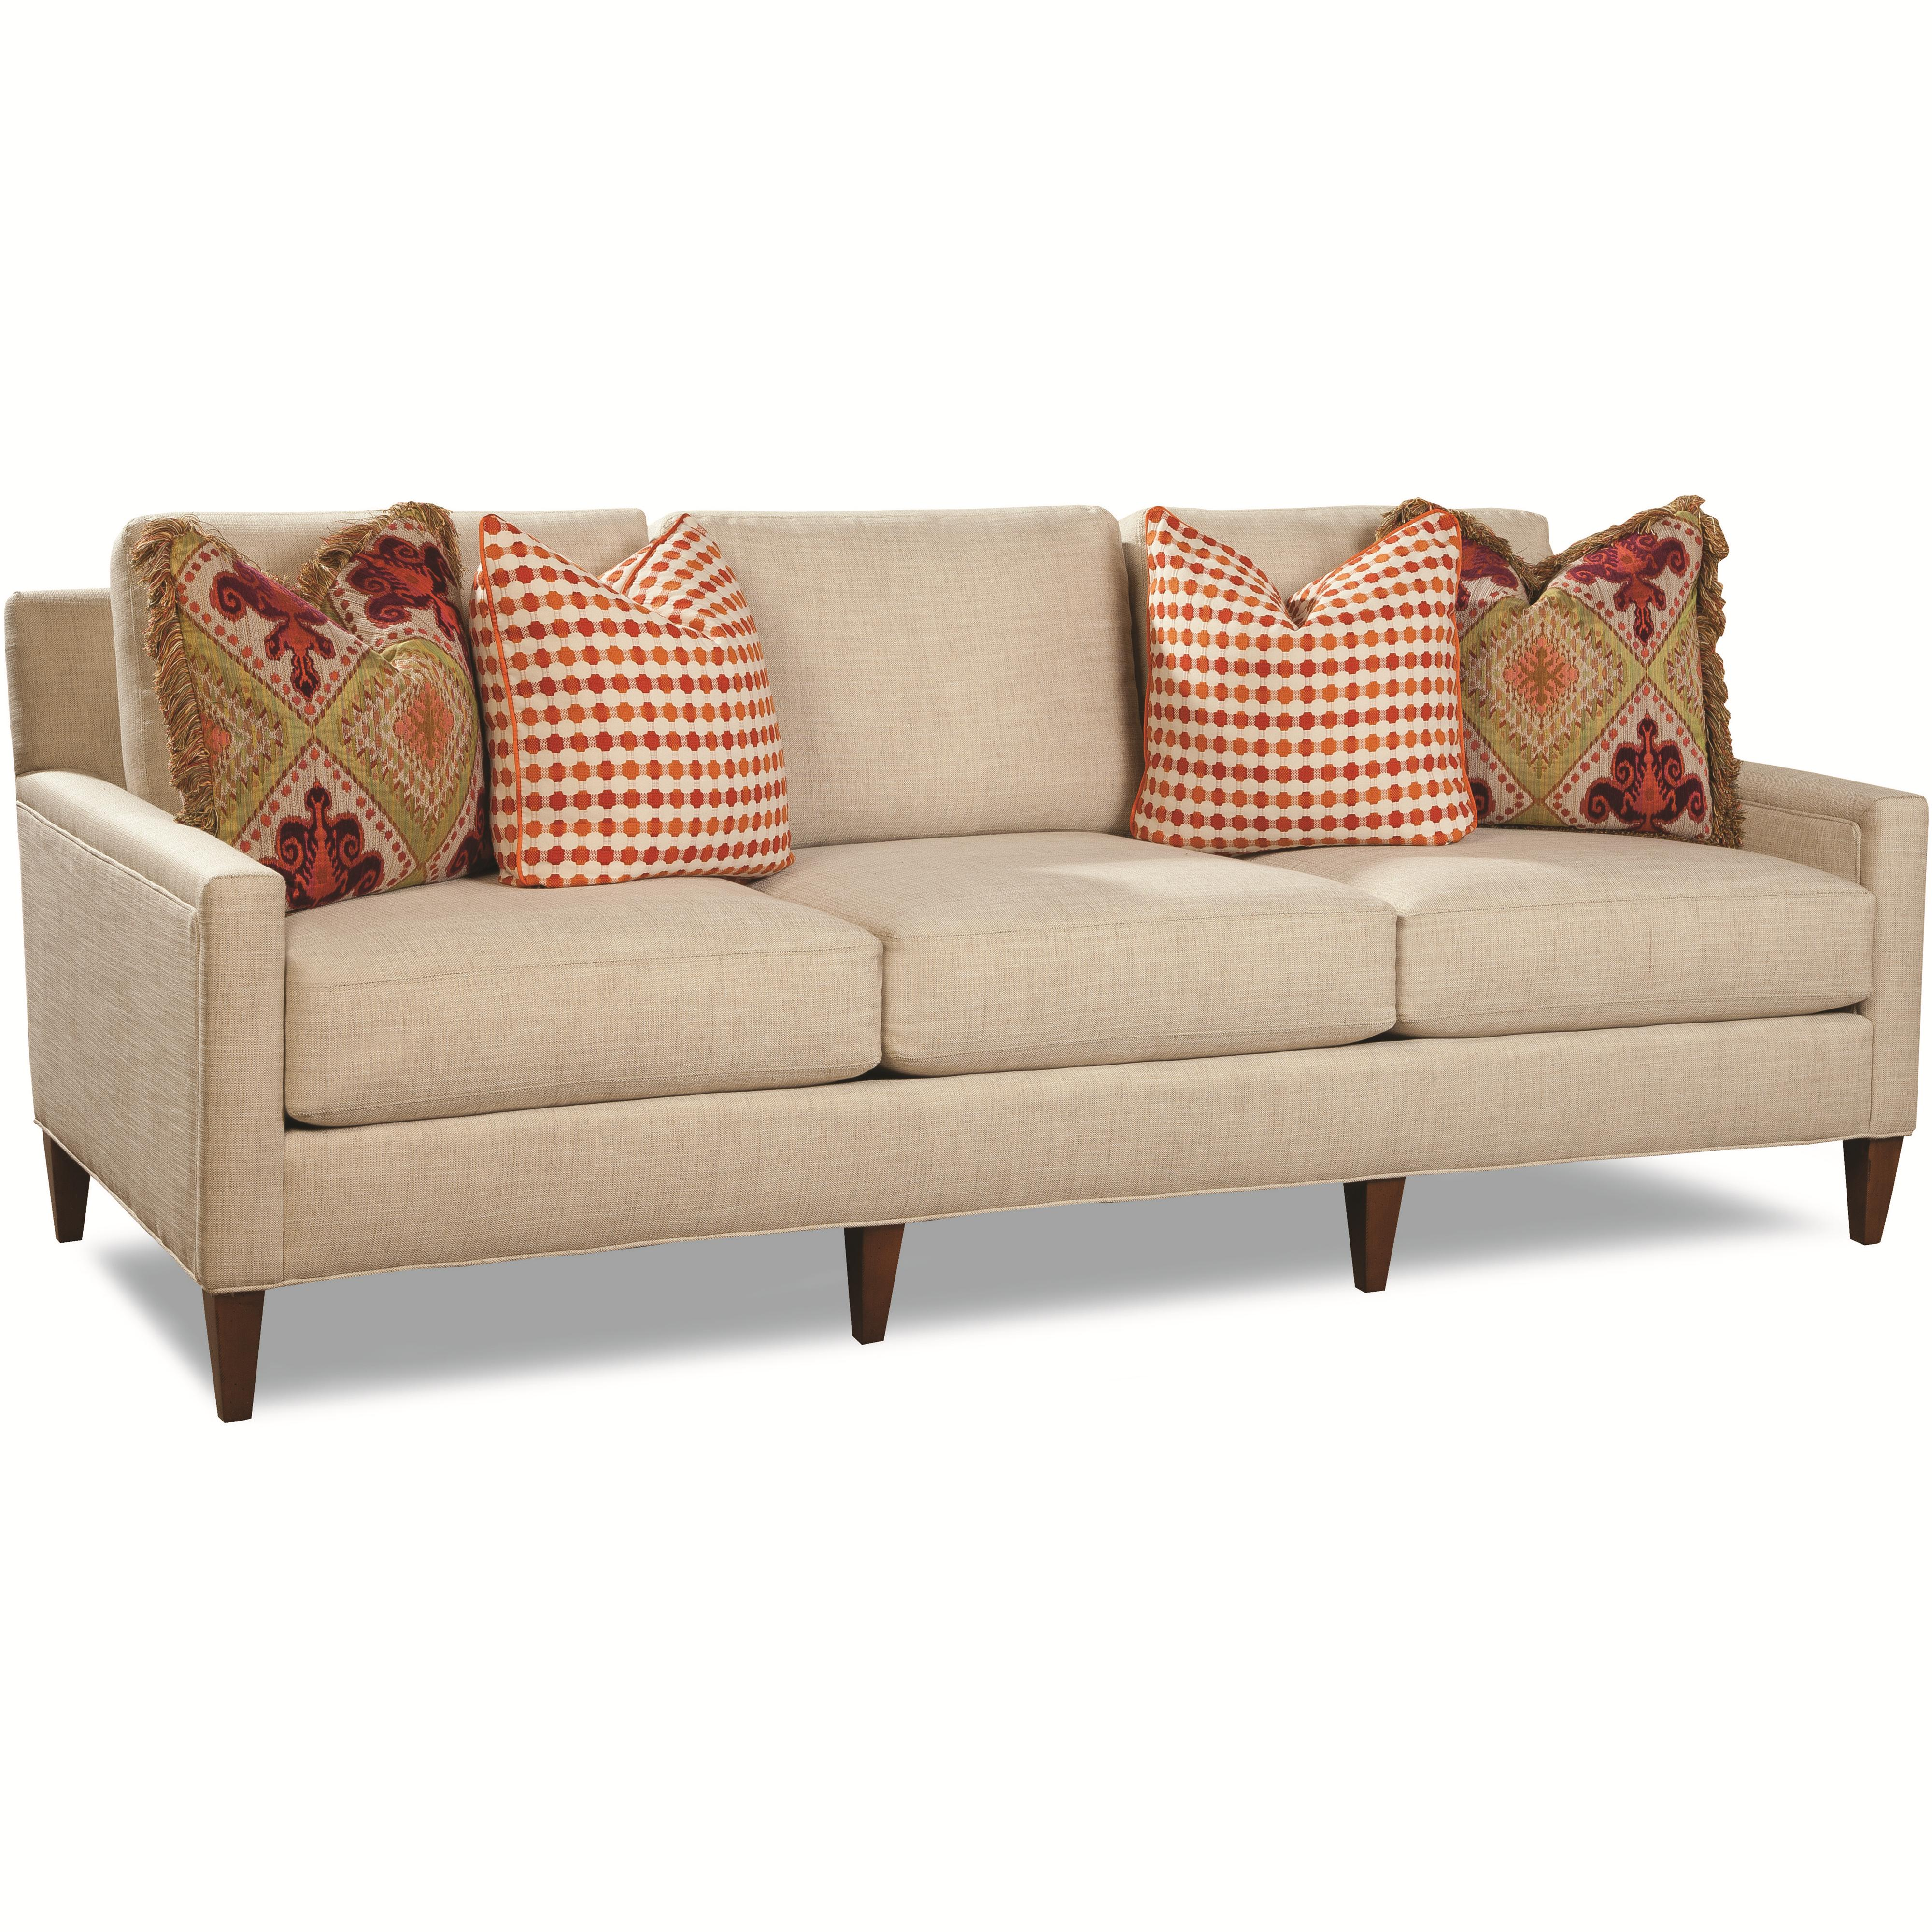 7209 Contemporary Sofa by Huntington House at Belfort Furniture